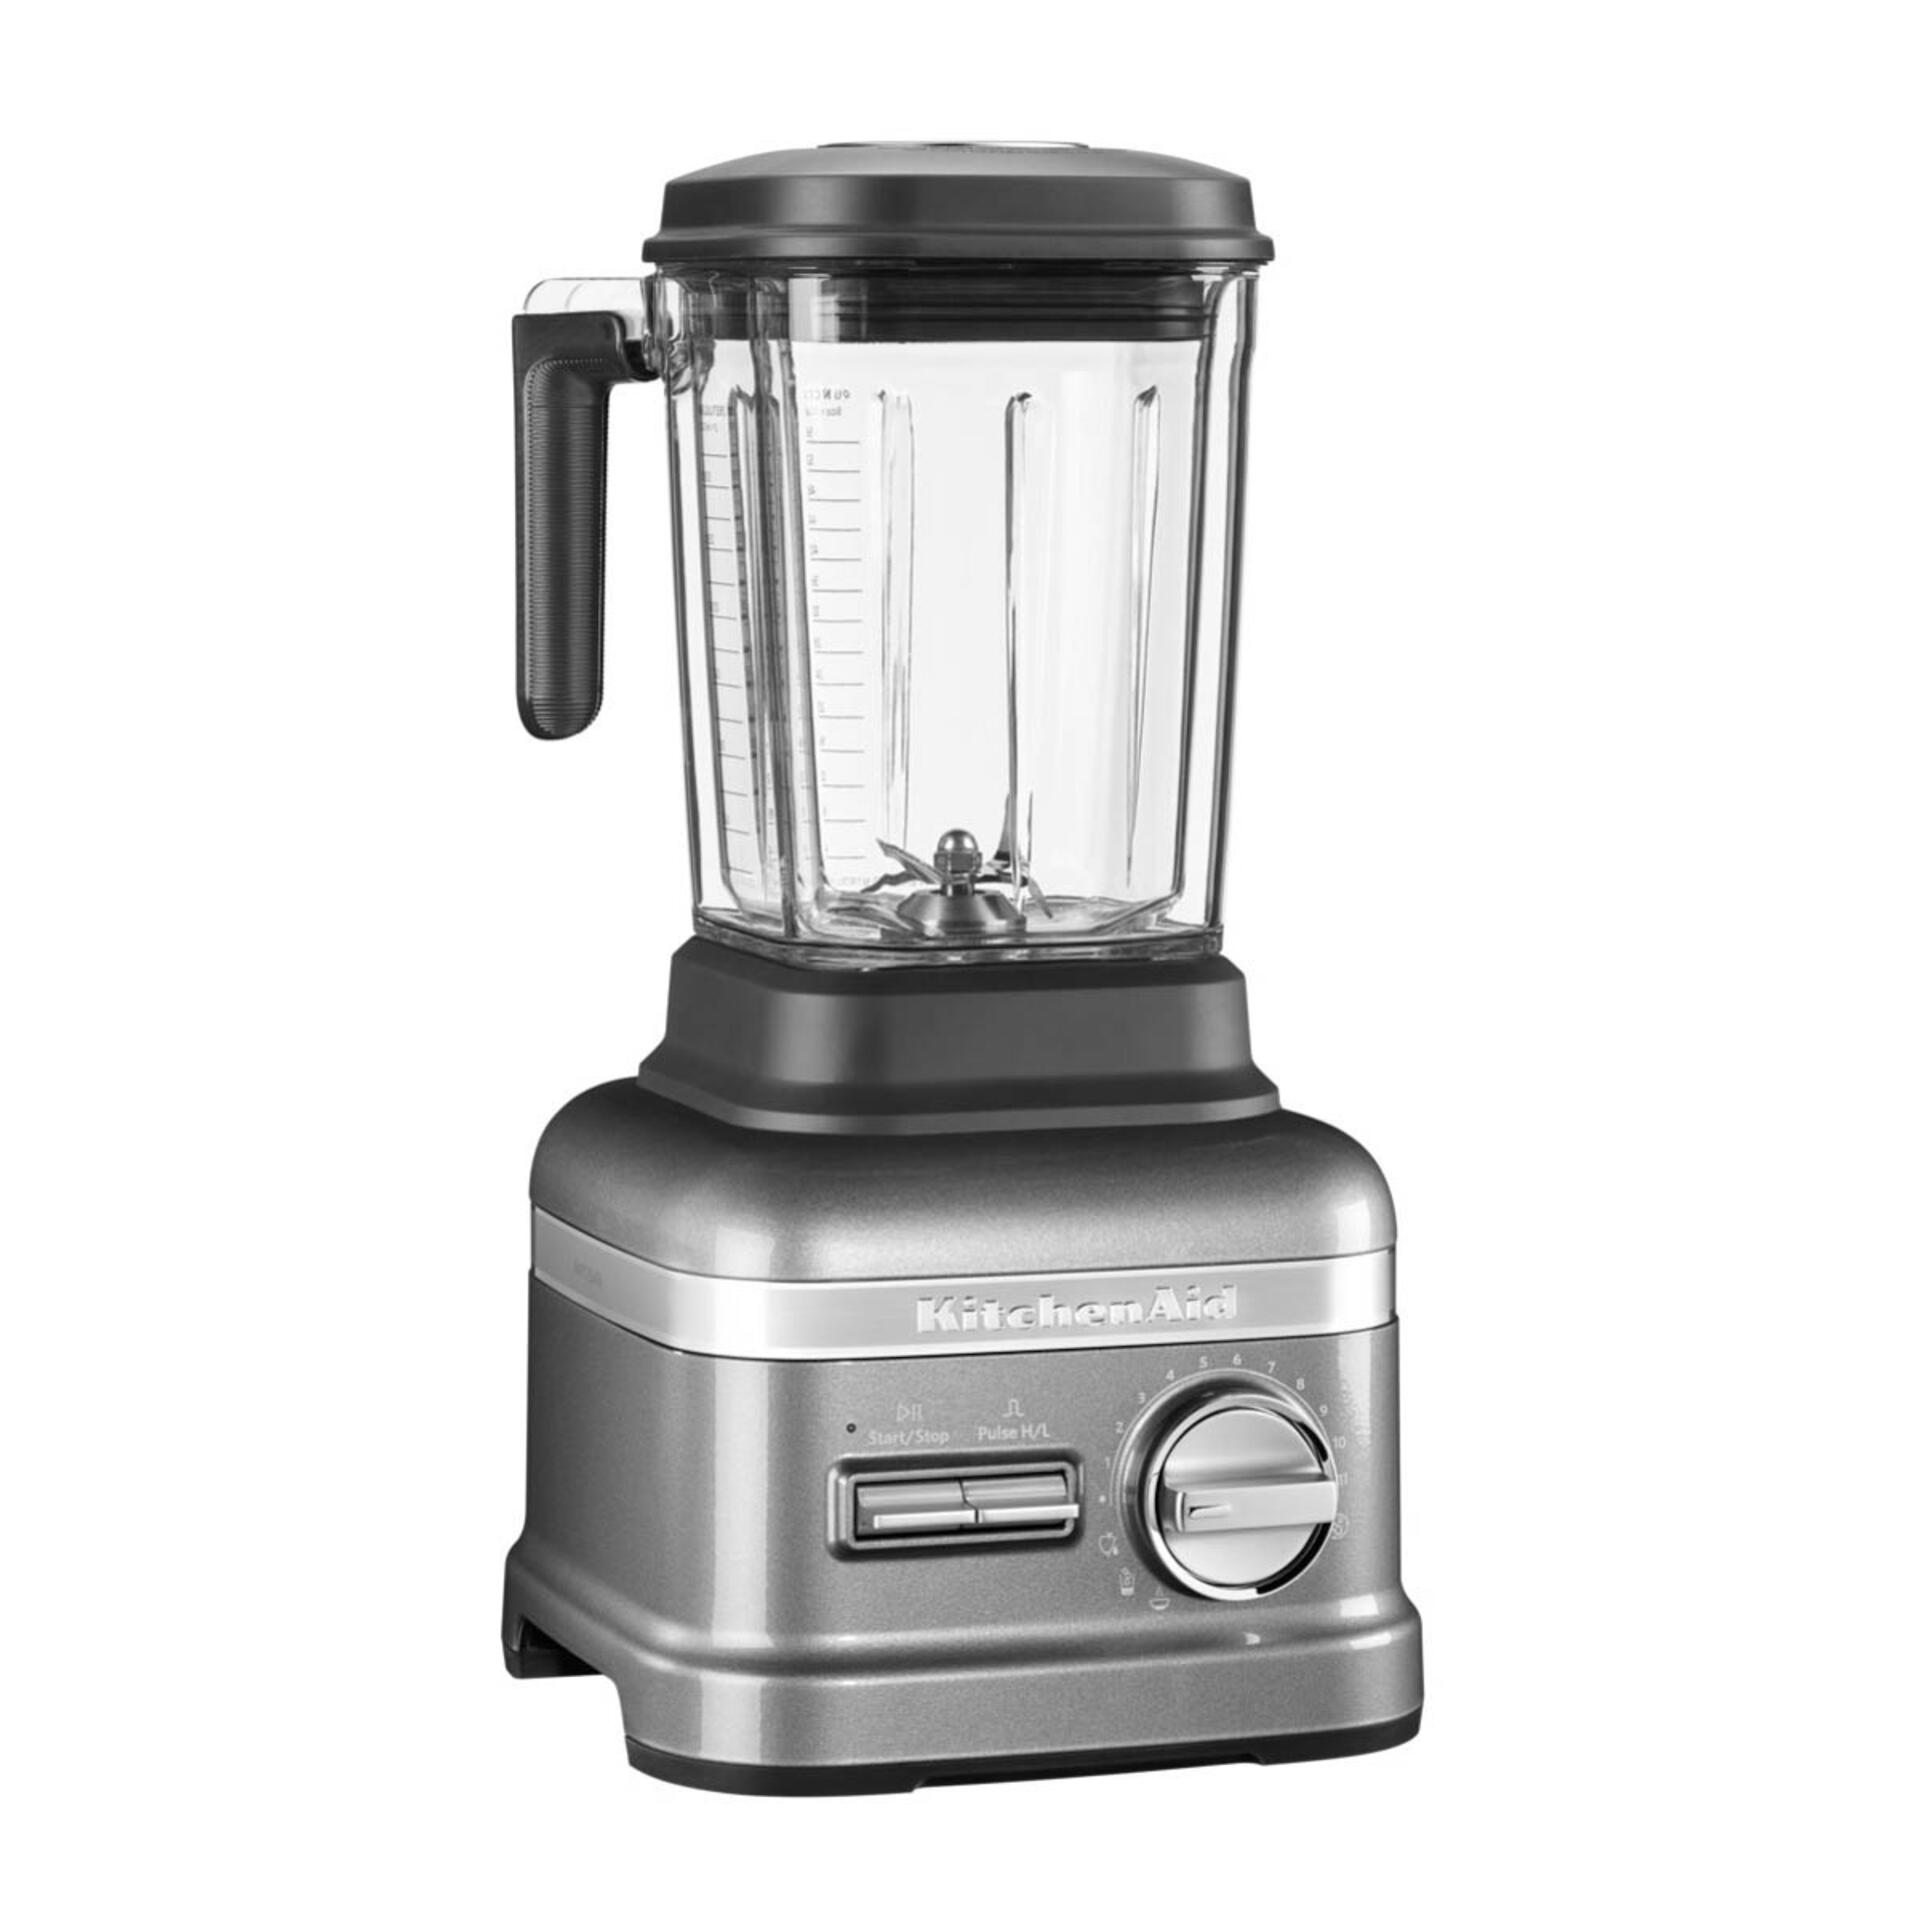 Kitchenaid Artisan Power Plus Blender Standmixer 5KSB8270 Medaillon-Silber